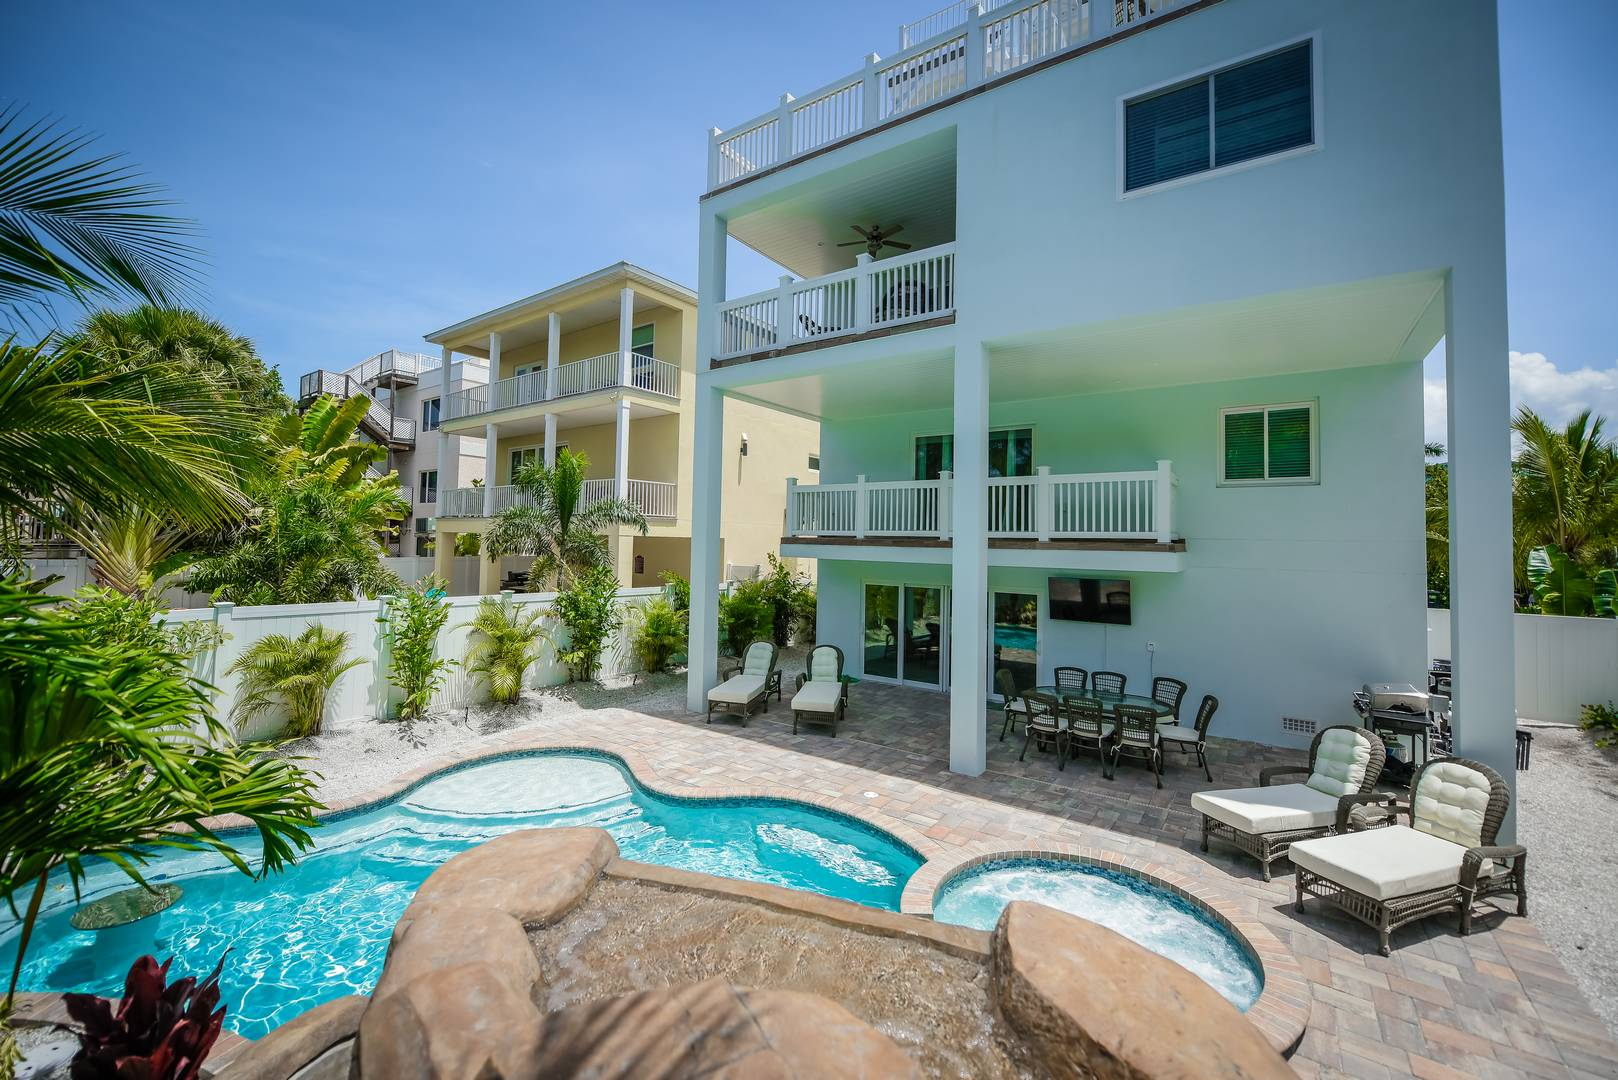 Heated Pool and Spa, Slide, Gratto, and more